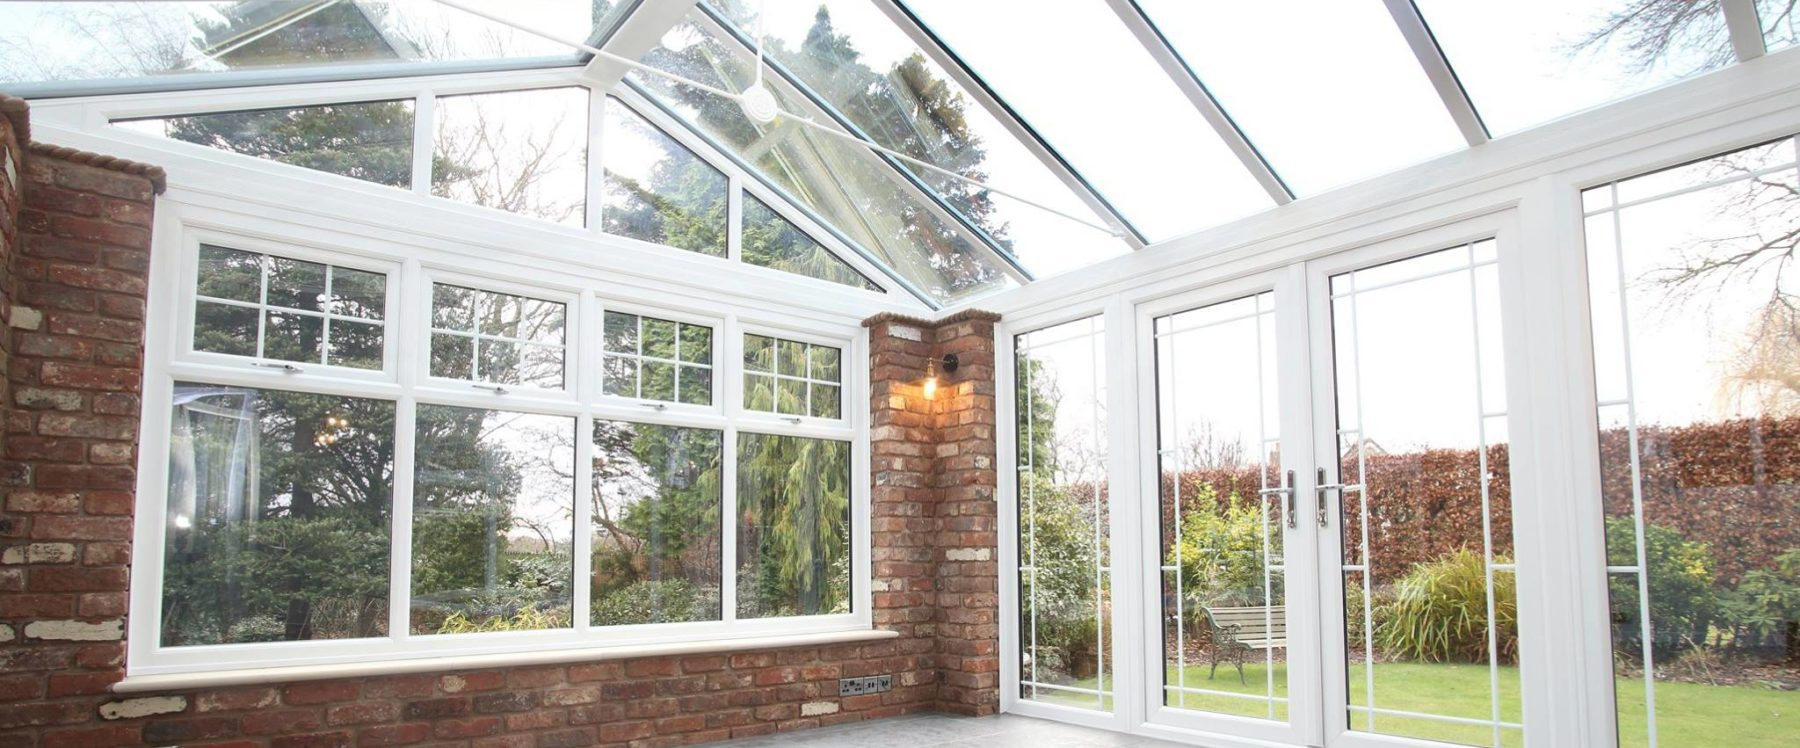 Conservatory in Liverpool